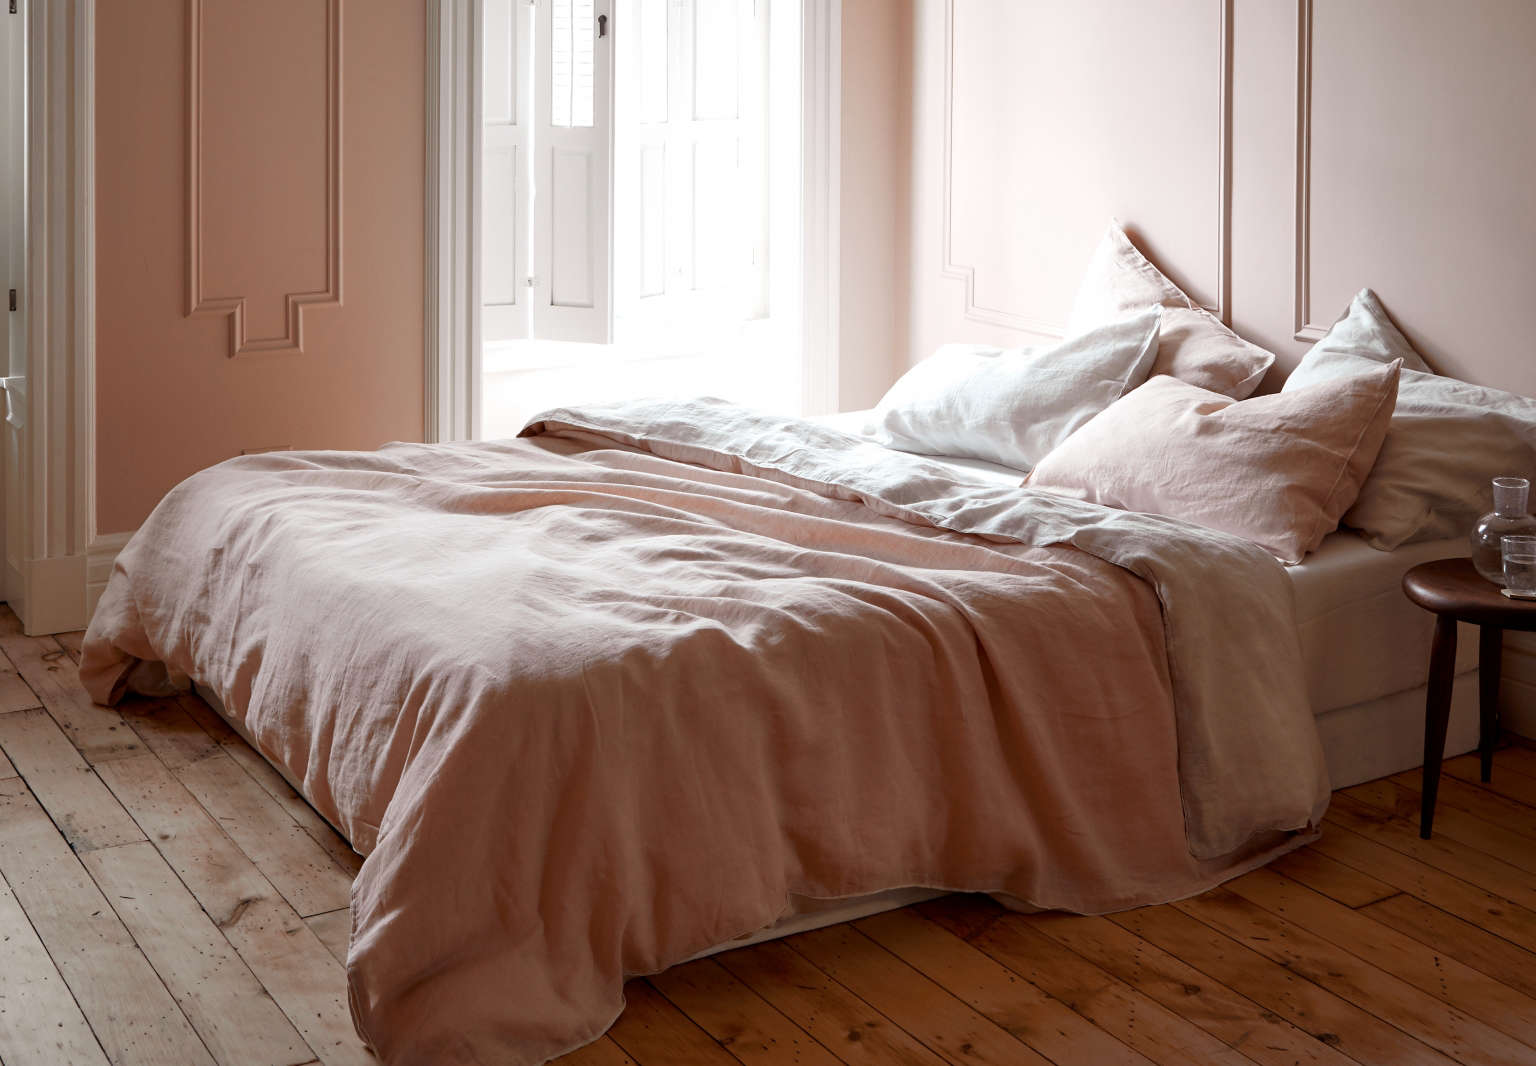 The Monochrome bedroom: Pale pink bedroom in Brooklyn by architect Jess Thomas. Kate Sears photo.